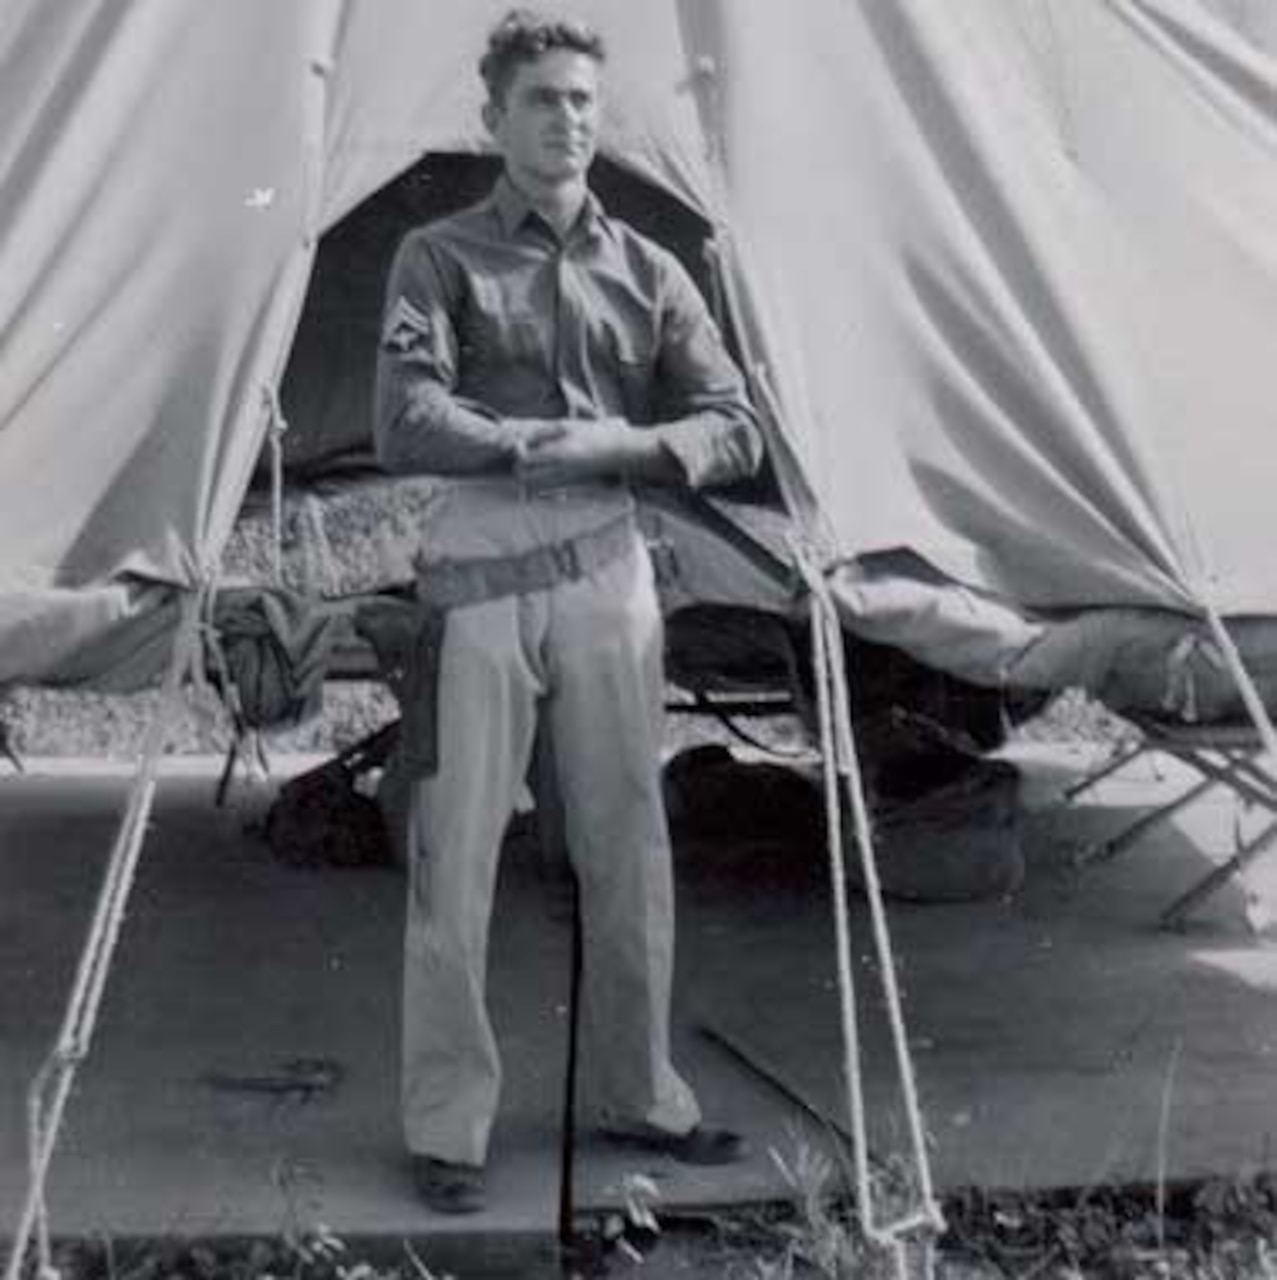 A  man poses next to a tent.